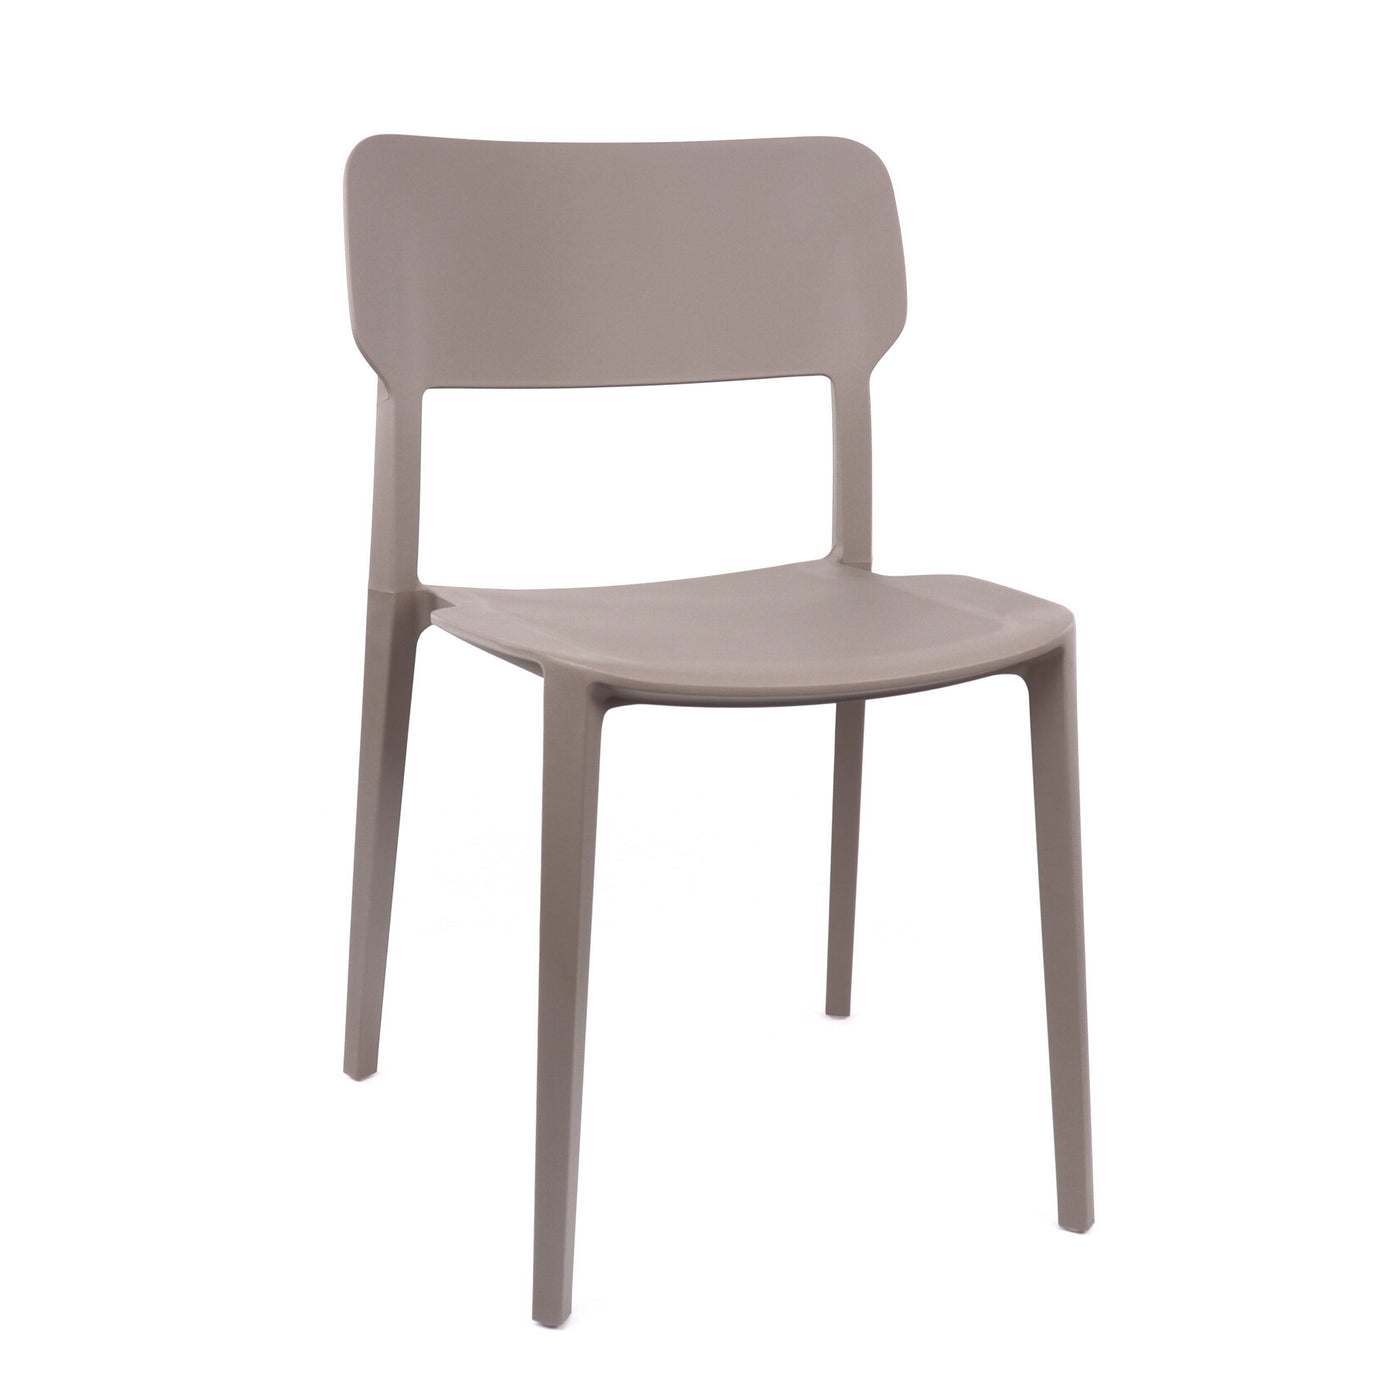 Design Lab MN LS-9605-GRY Viro Medium Grey Outdoor Dining Chair Set of 4